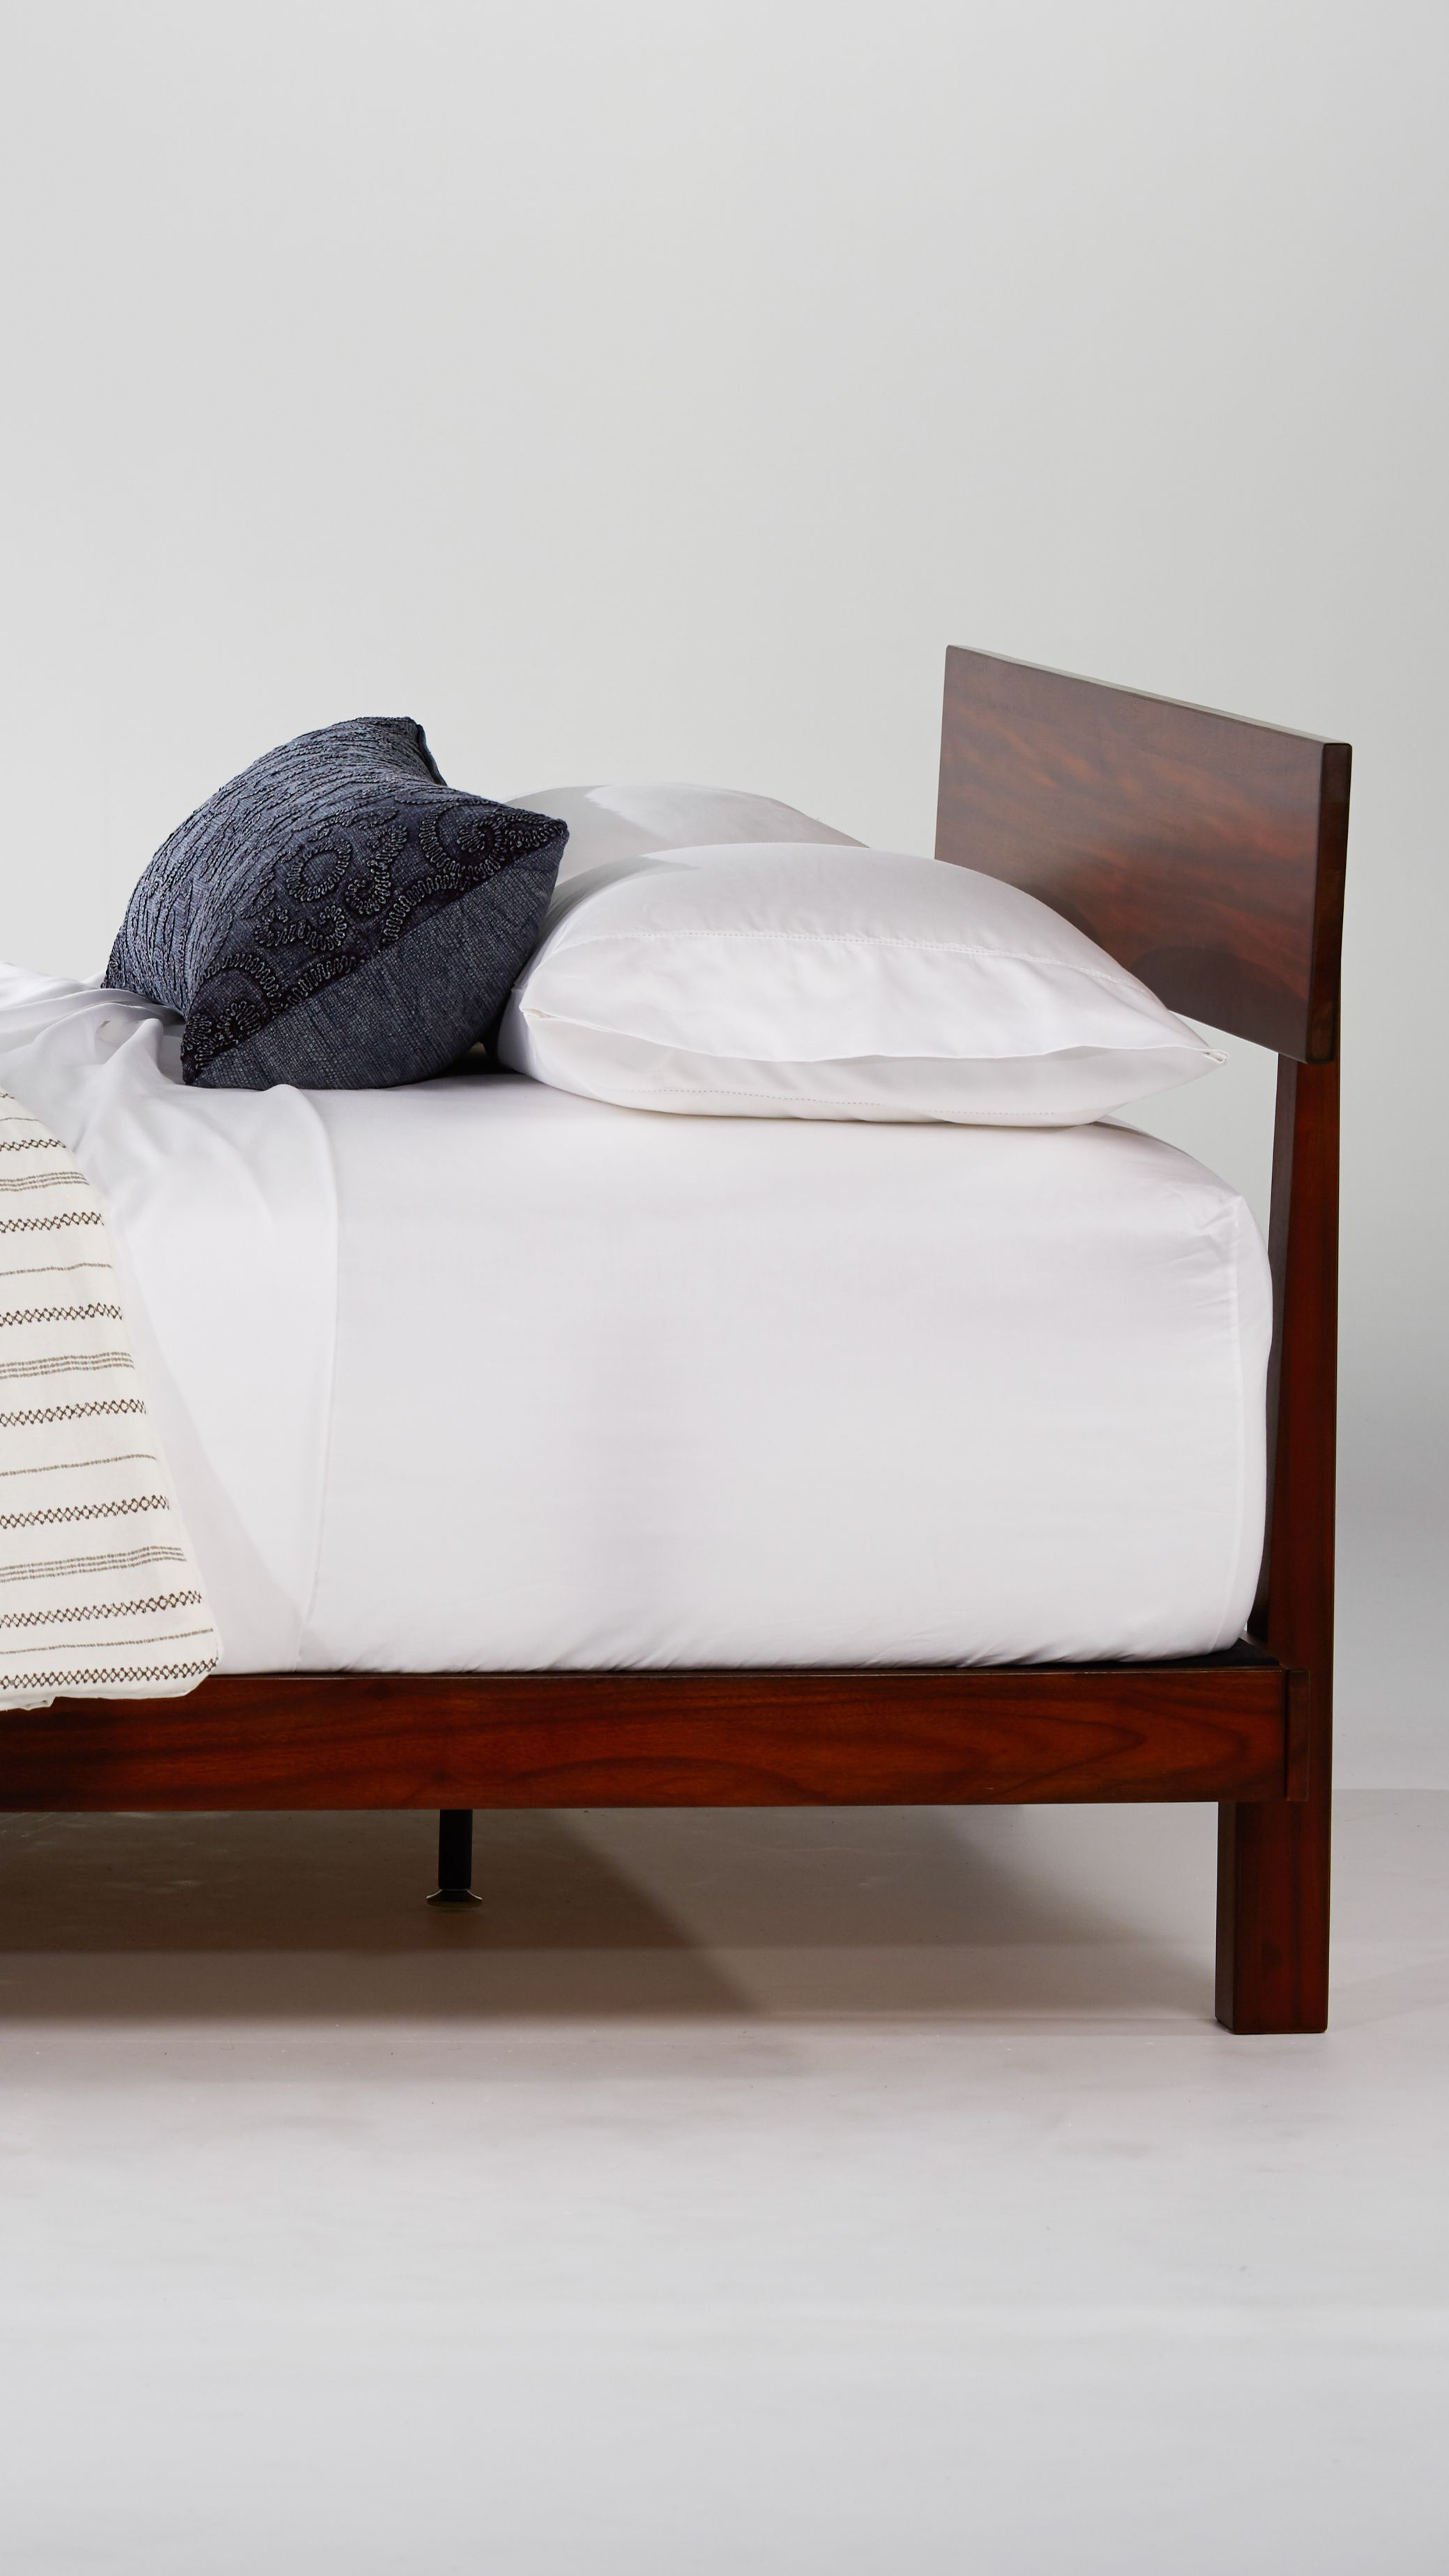 Rogers Alana Wood Platform Bed Is The Perfect Mid Century Accent